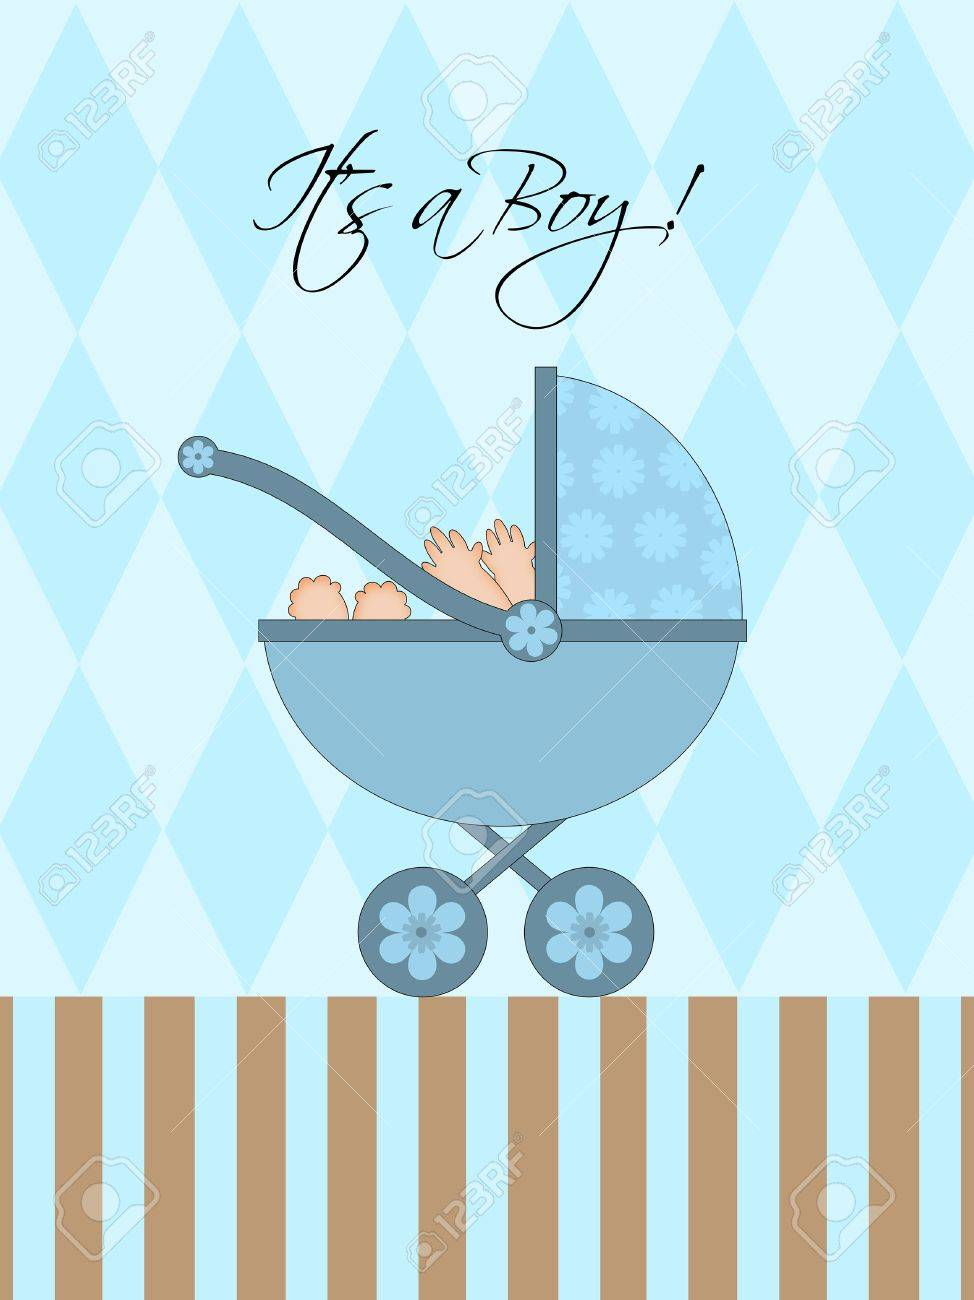 Its A Boy Blue Baby Pram Carriage with Background Illustration Stock Photo - 8860949